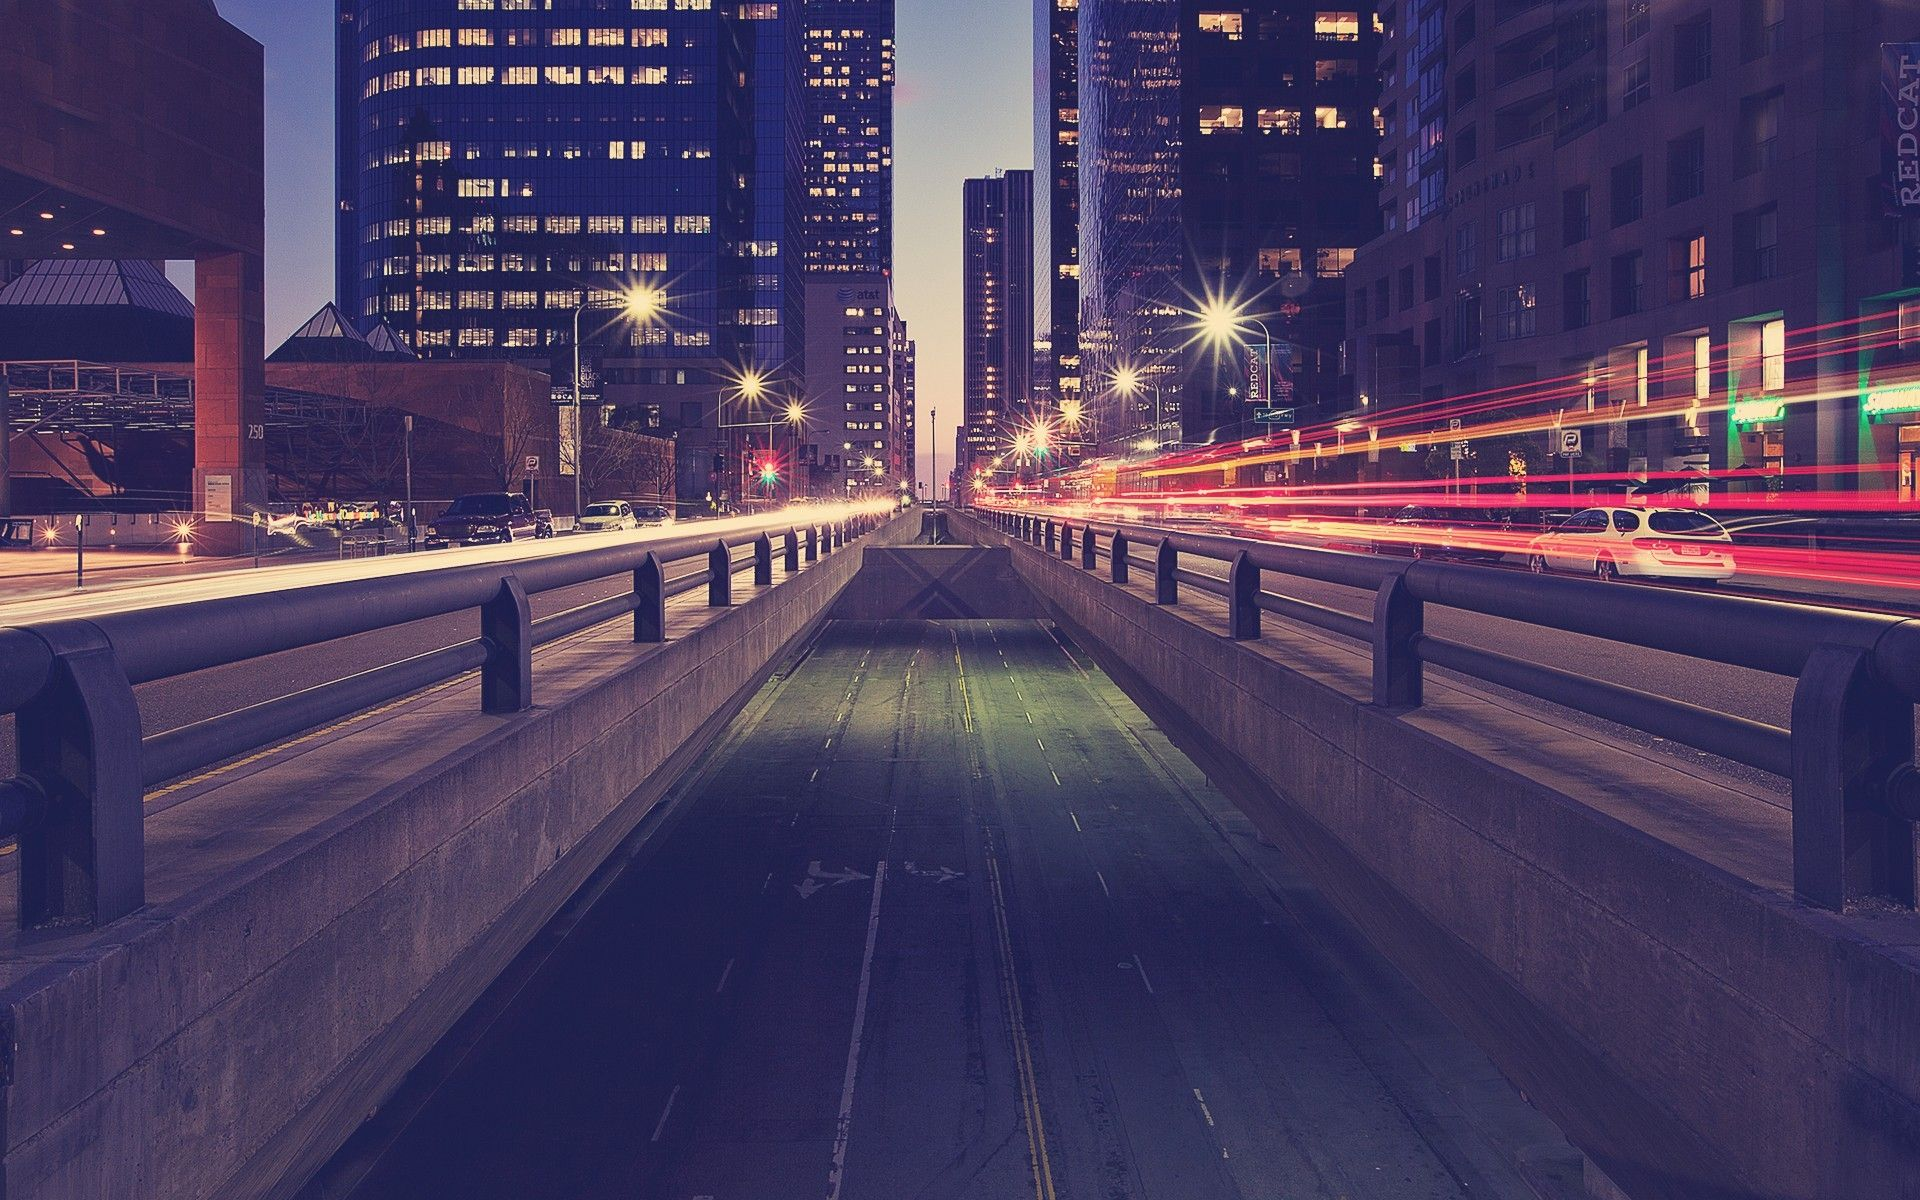 Download Wallpaper Road, Traffic, Night, City Lights - Night City Road Backgrounds , HD Wallpaper & Backgrounds